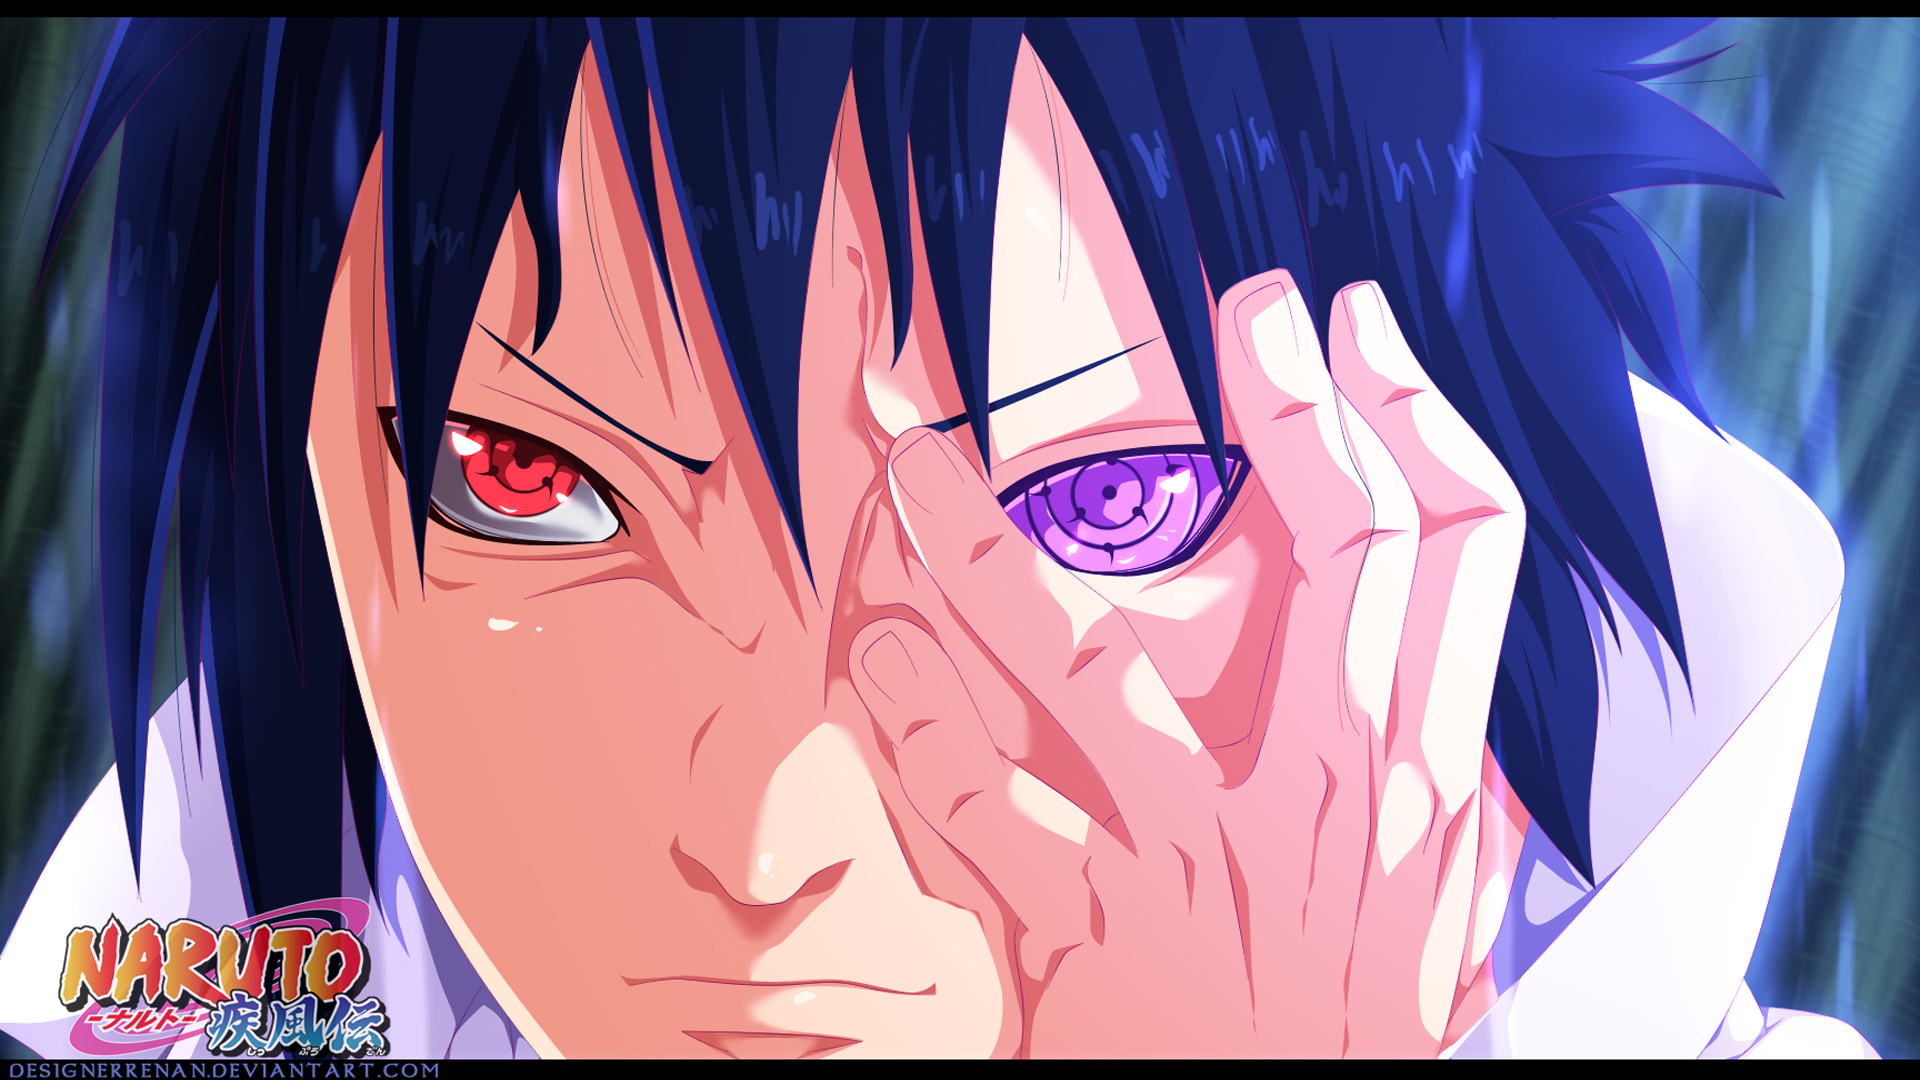 Sasuke Rinnegan Eye Wallpaper HD